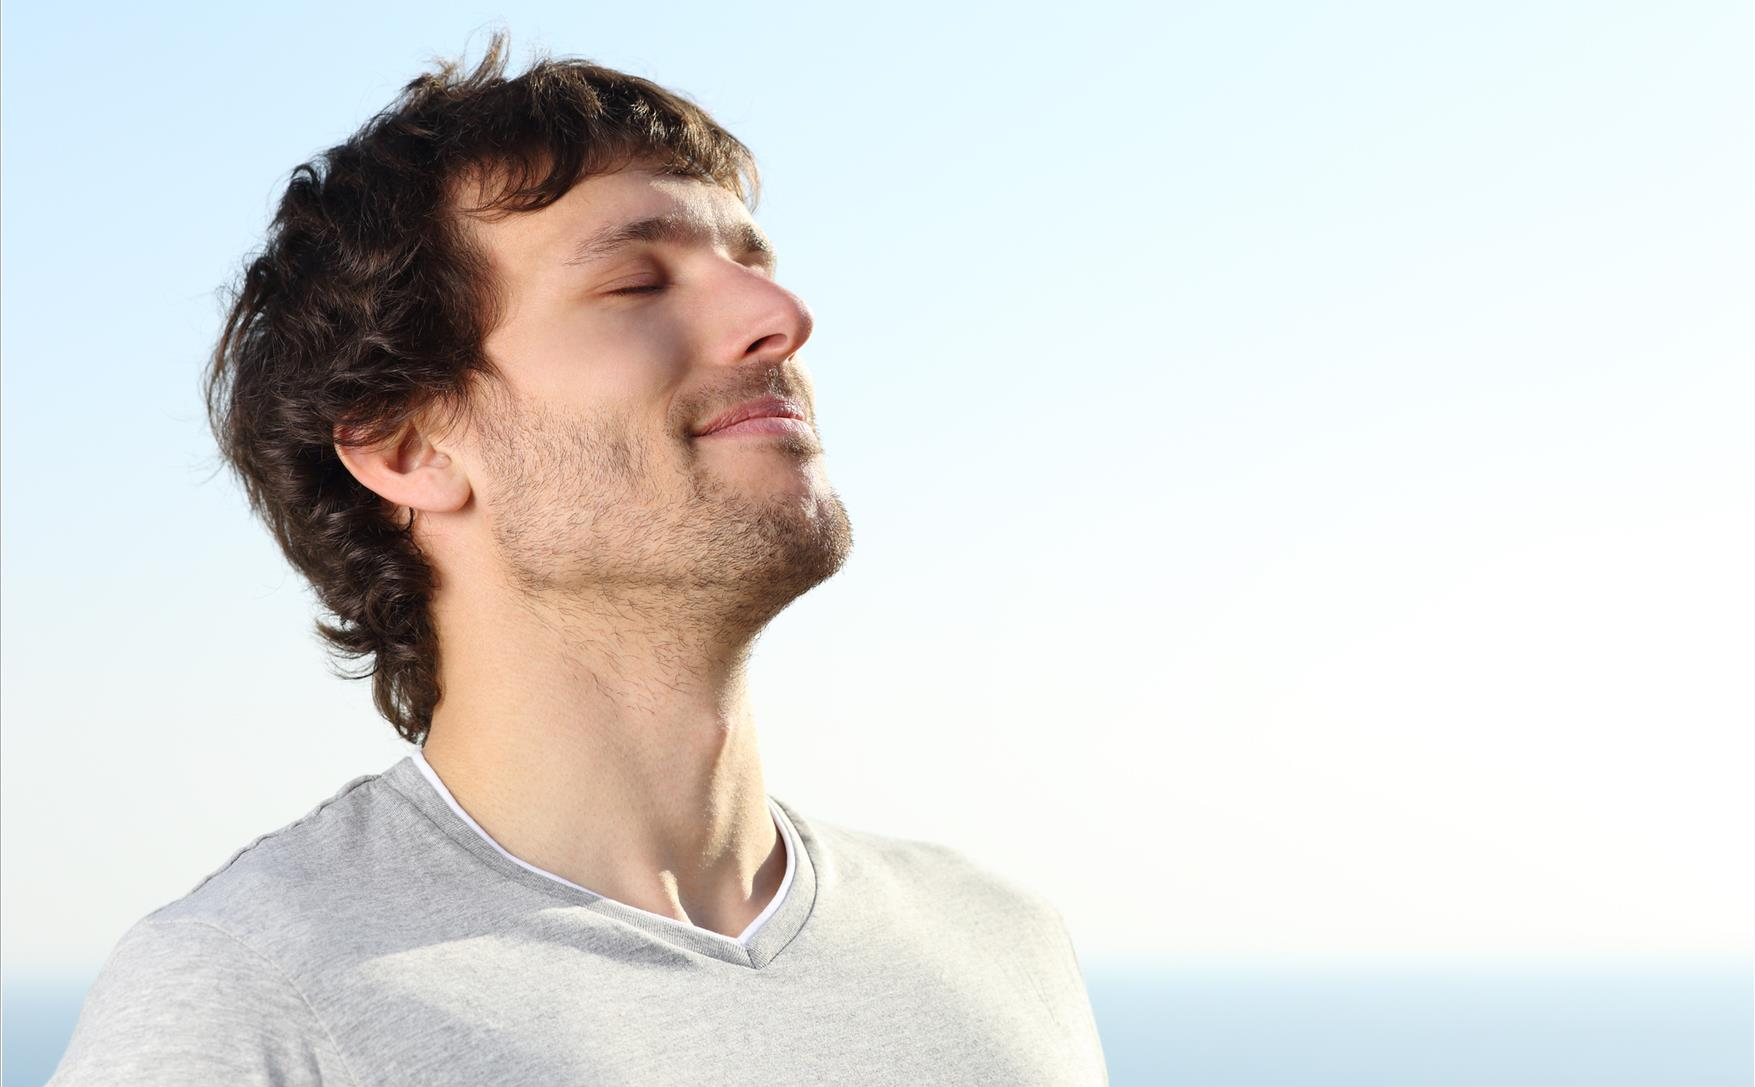 Reduce Inflammation with this Breathing Exercise